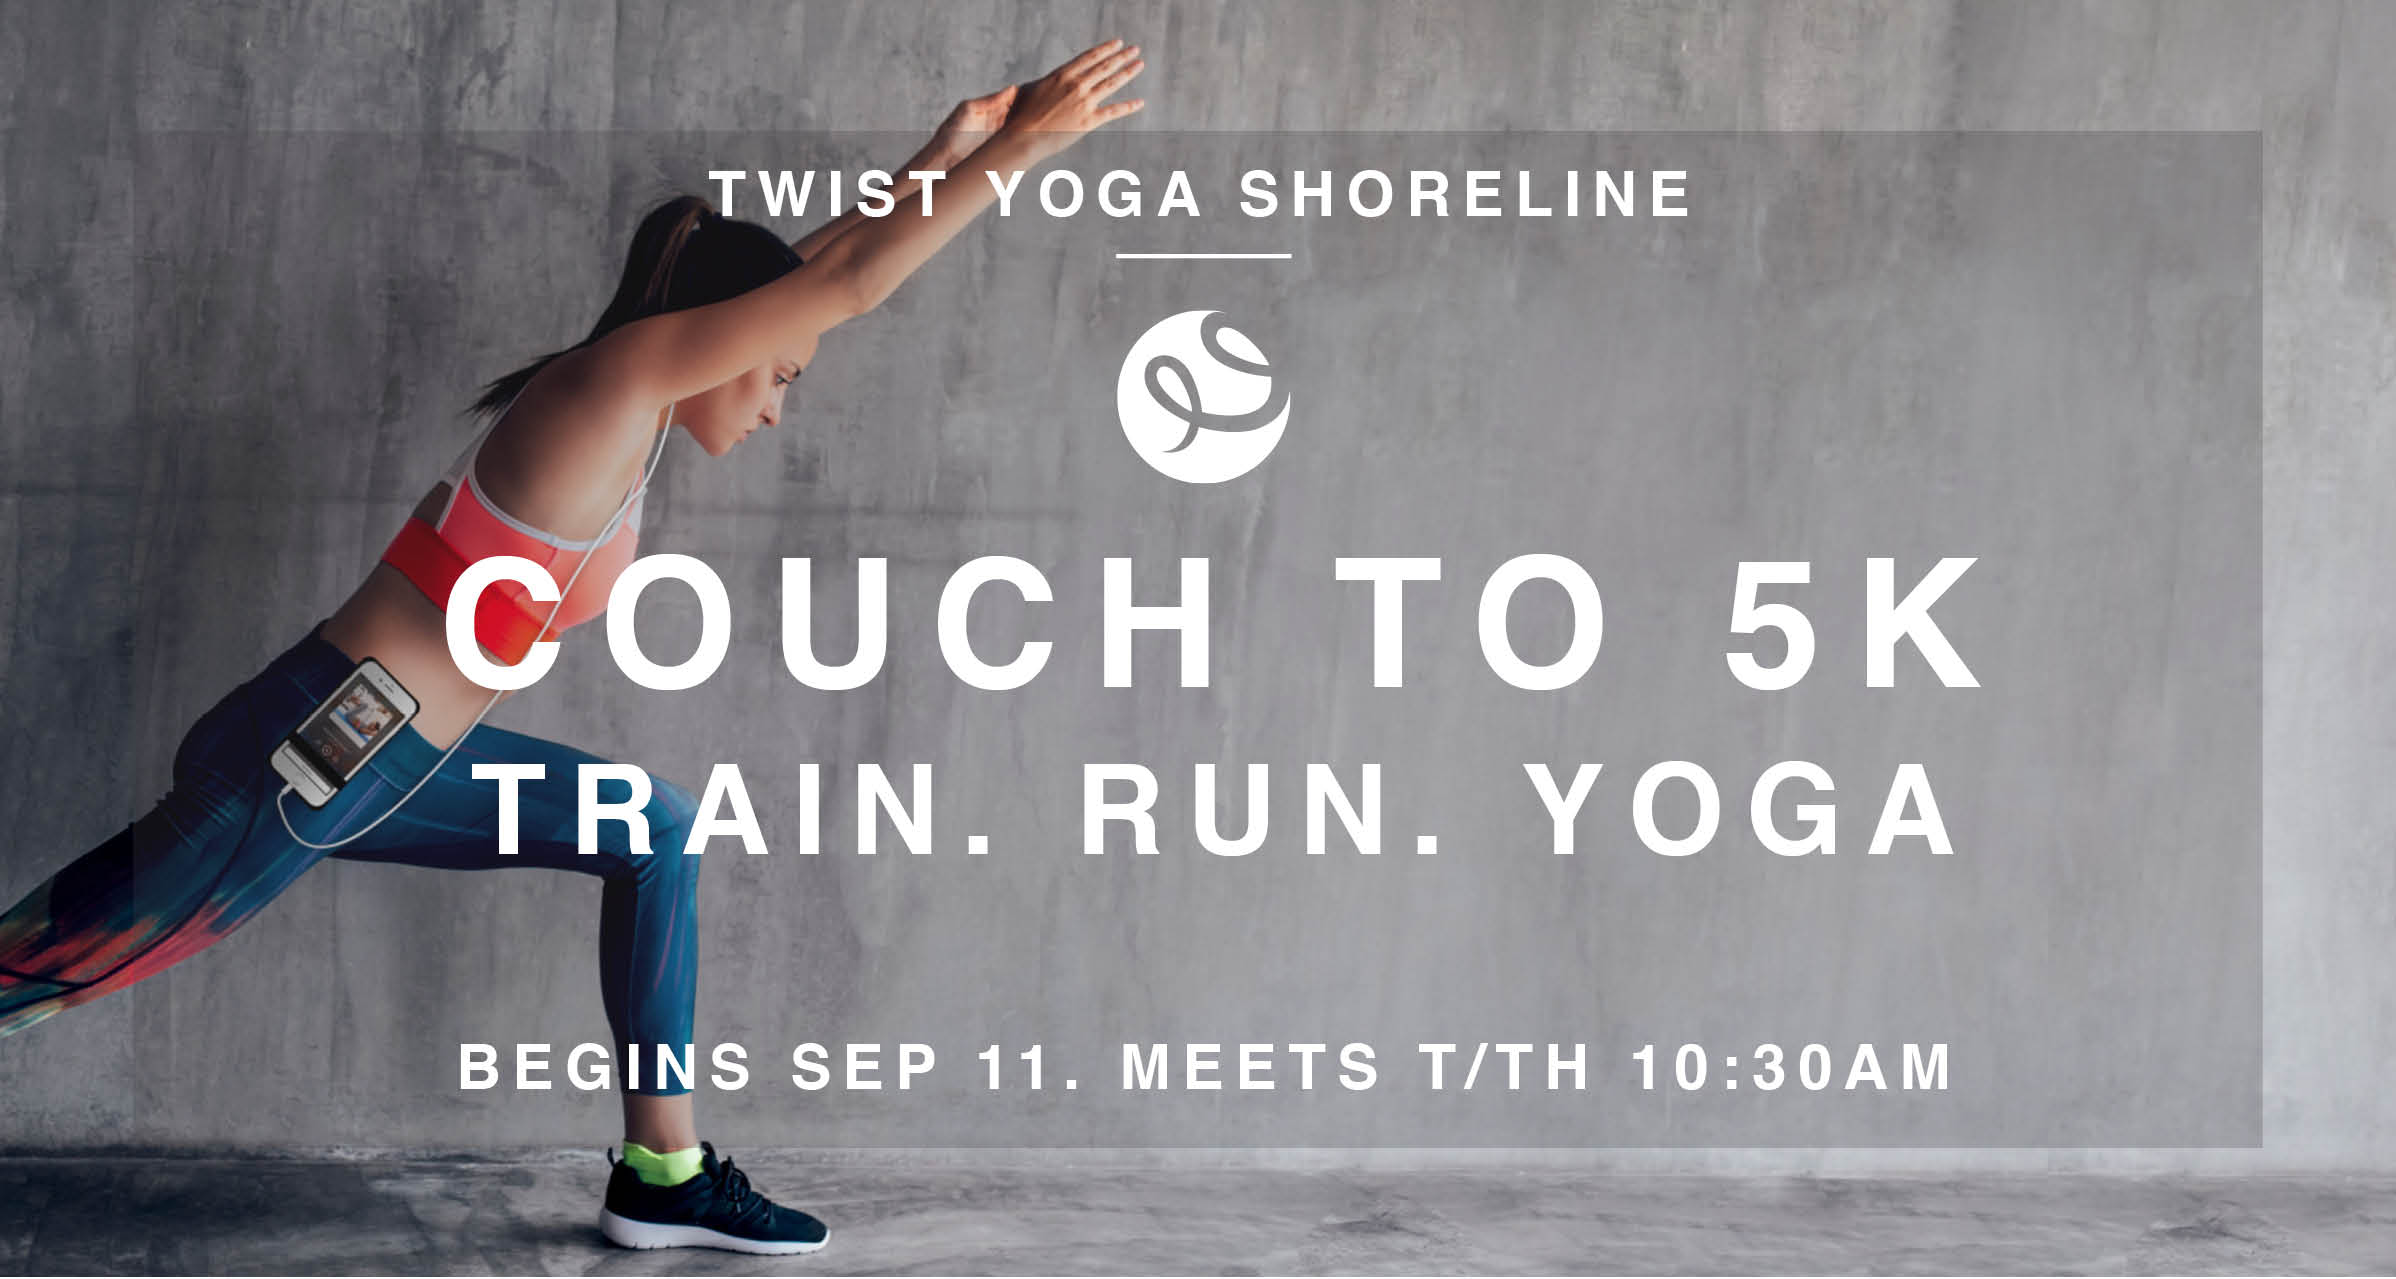 Couch To 5k Xls Couch To 5k Train Run Yoga Twist Yoga